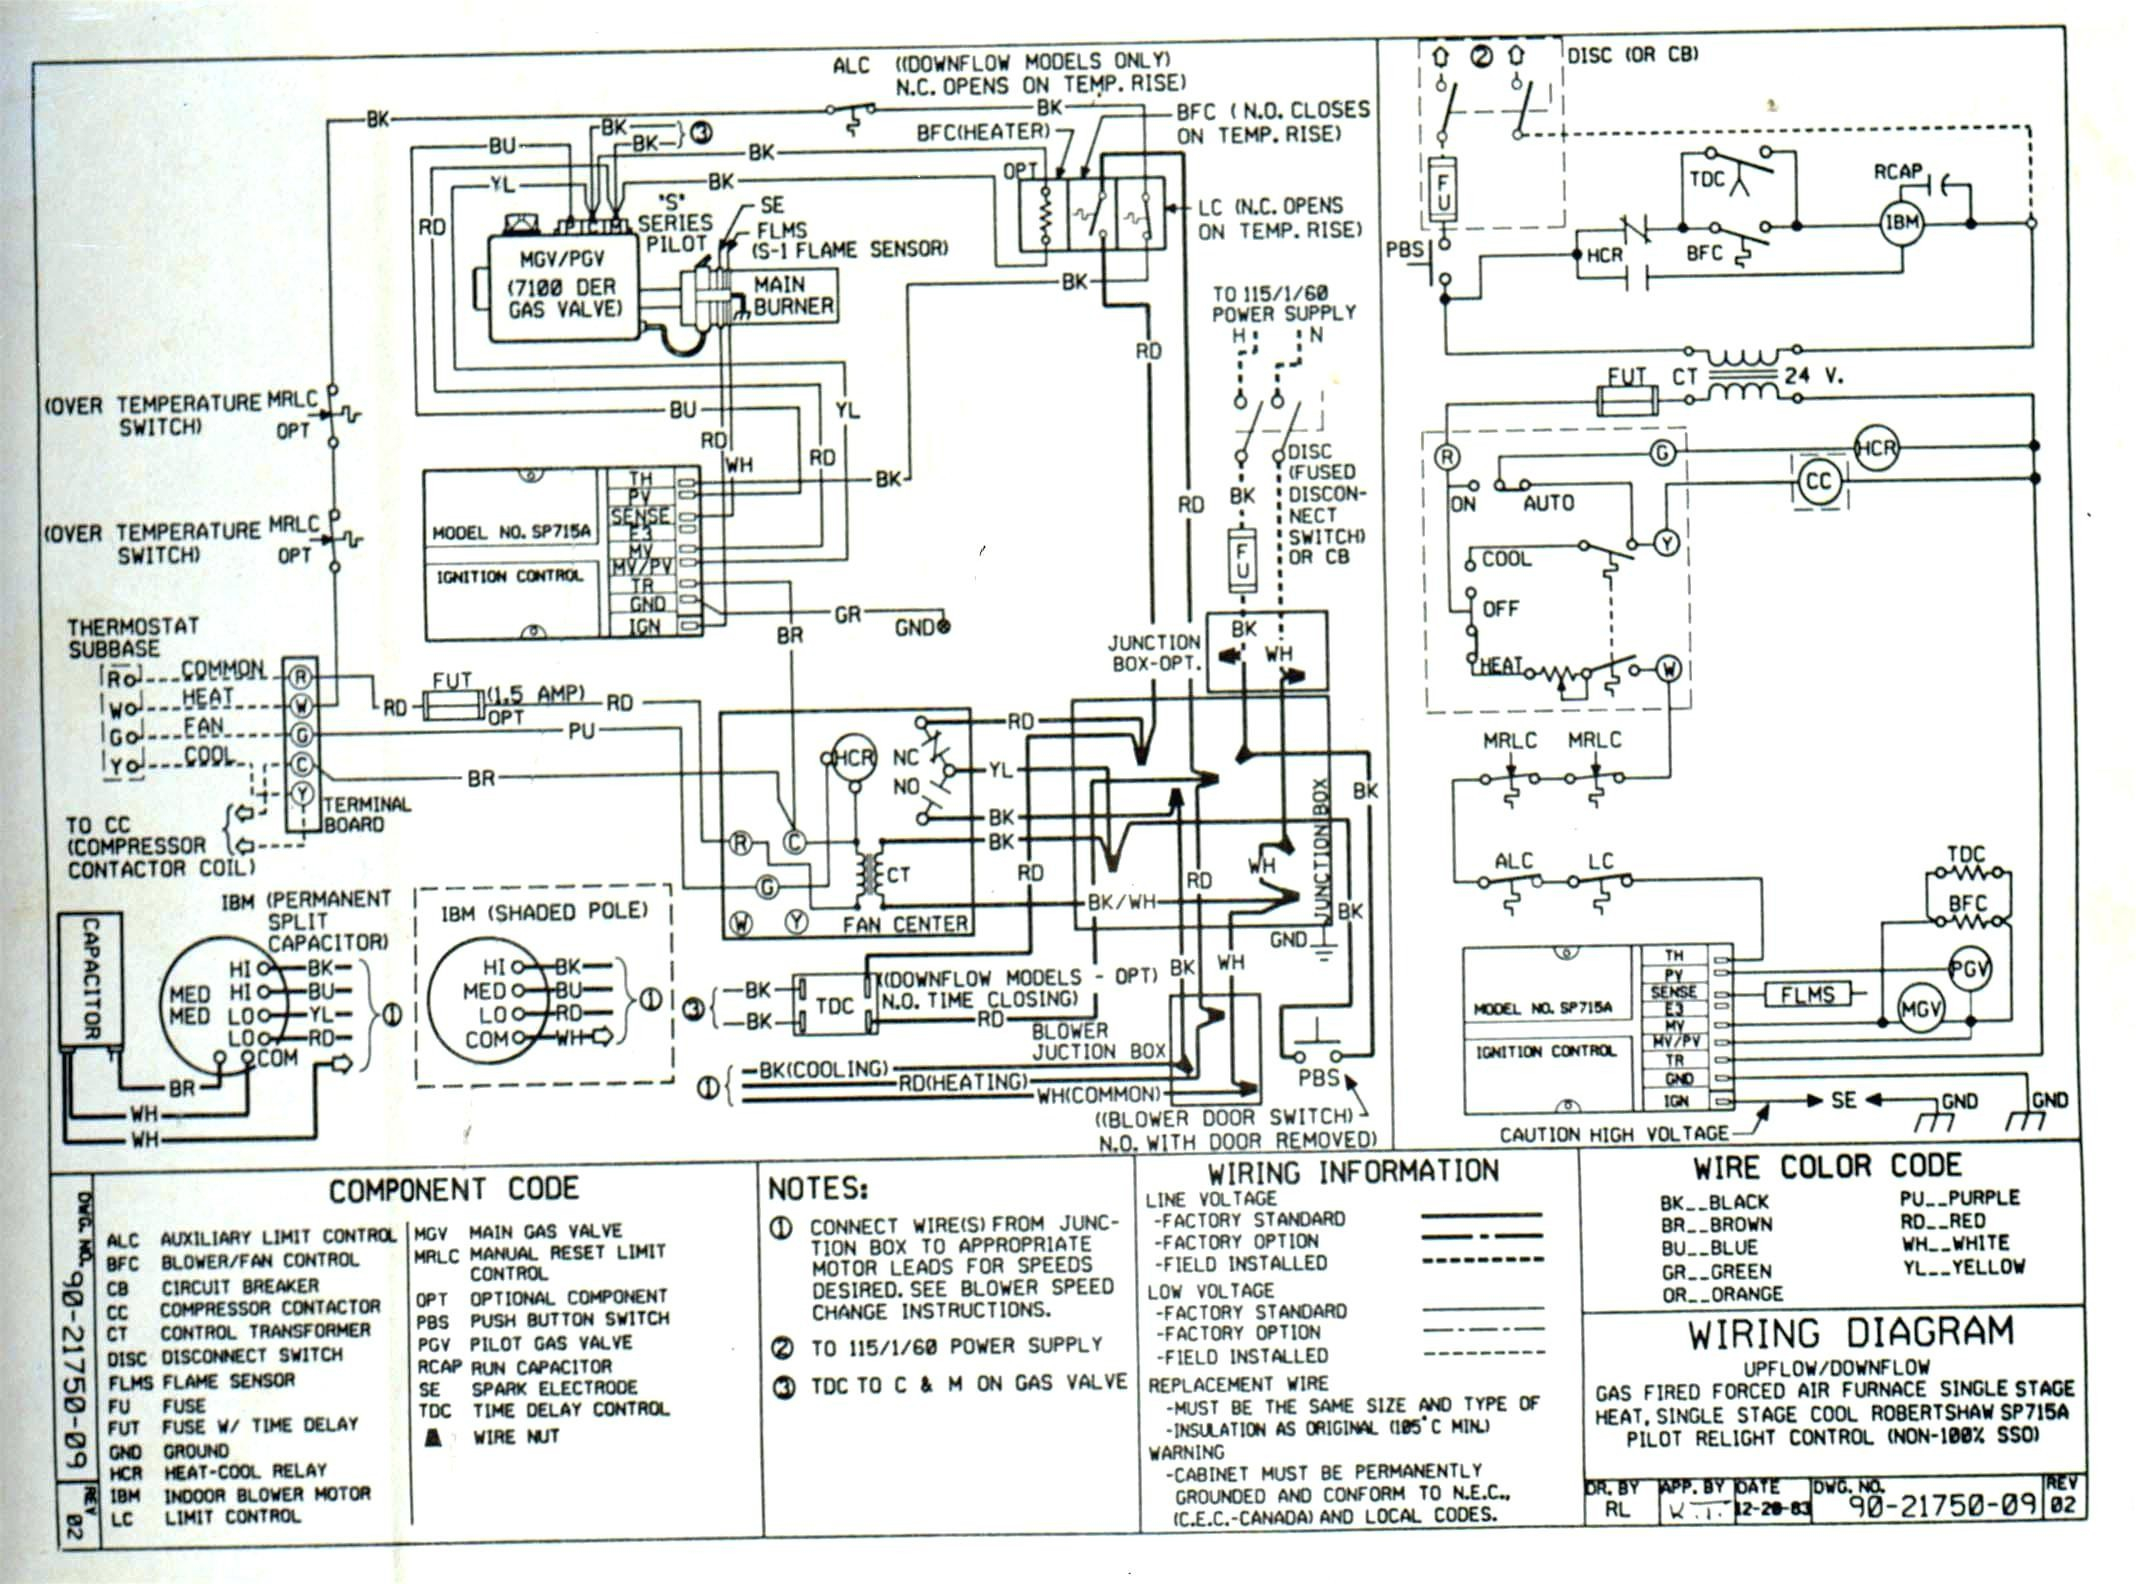 trane xv95 thermostat wiring diagram Download-Trane thermostat Wiring Diagram Luxury Wiring Diagram for Trane Xe1000 Wiring Diagram 9-d